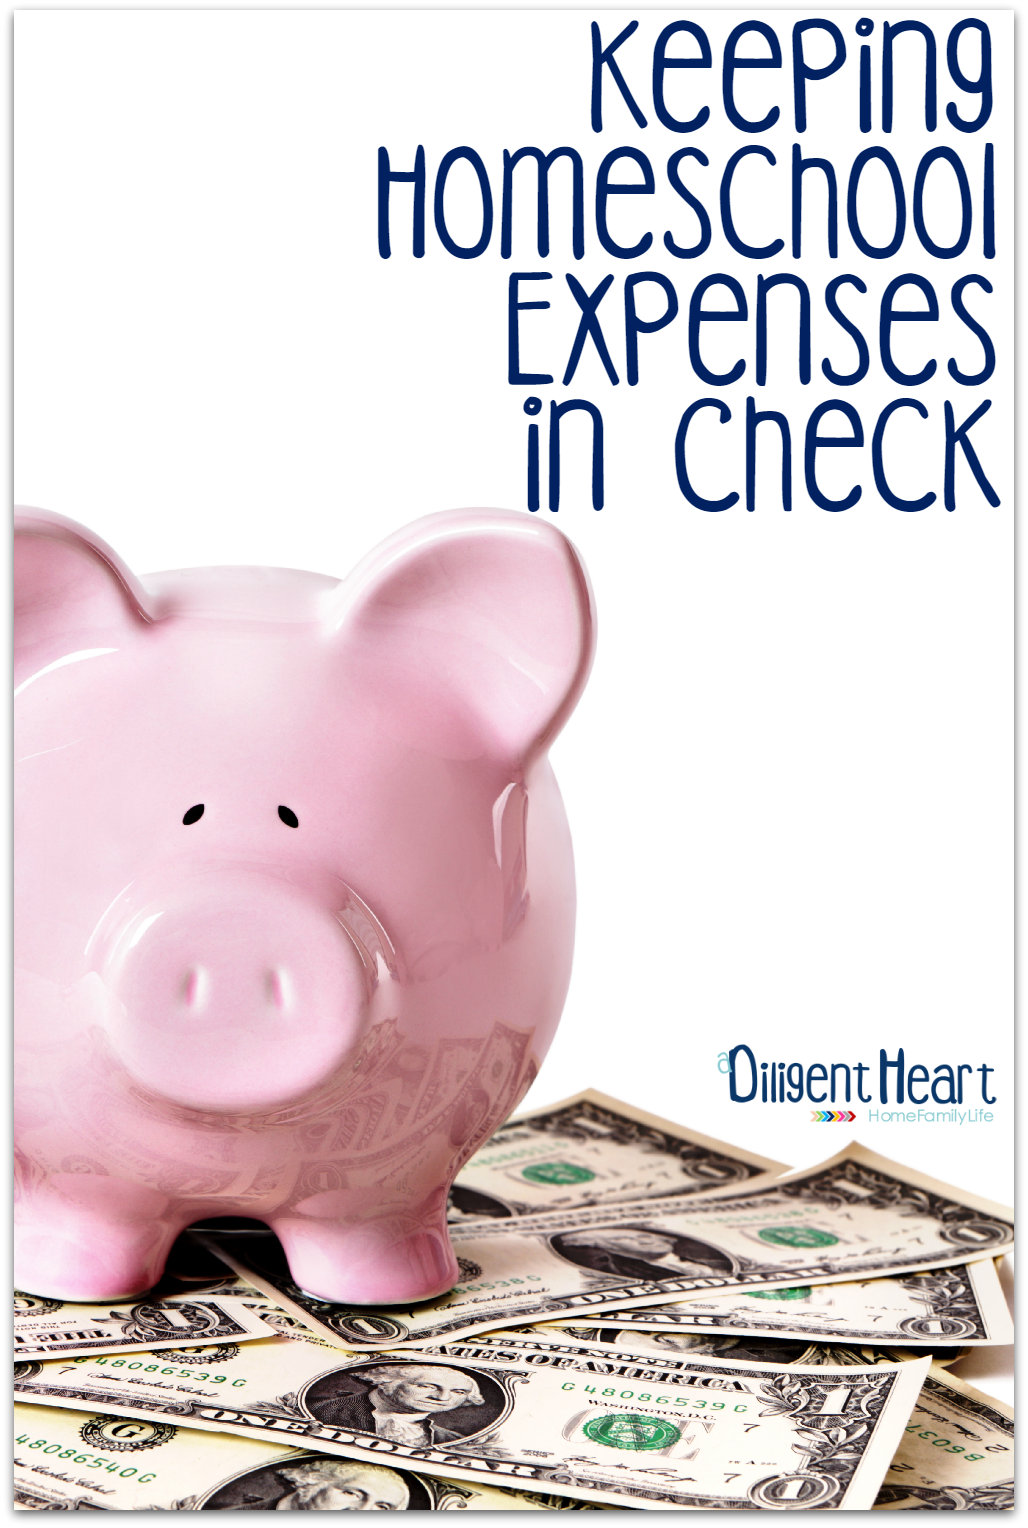 Ever wonder what it costs to homeschool and how to keep homeschool expenses in check? In this post I share our homeschool expenses, along with a few tips that help me keep our finances in line.   adiligentheart.com